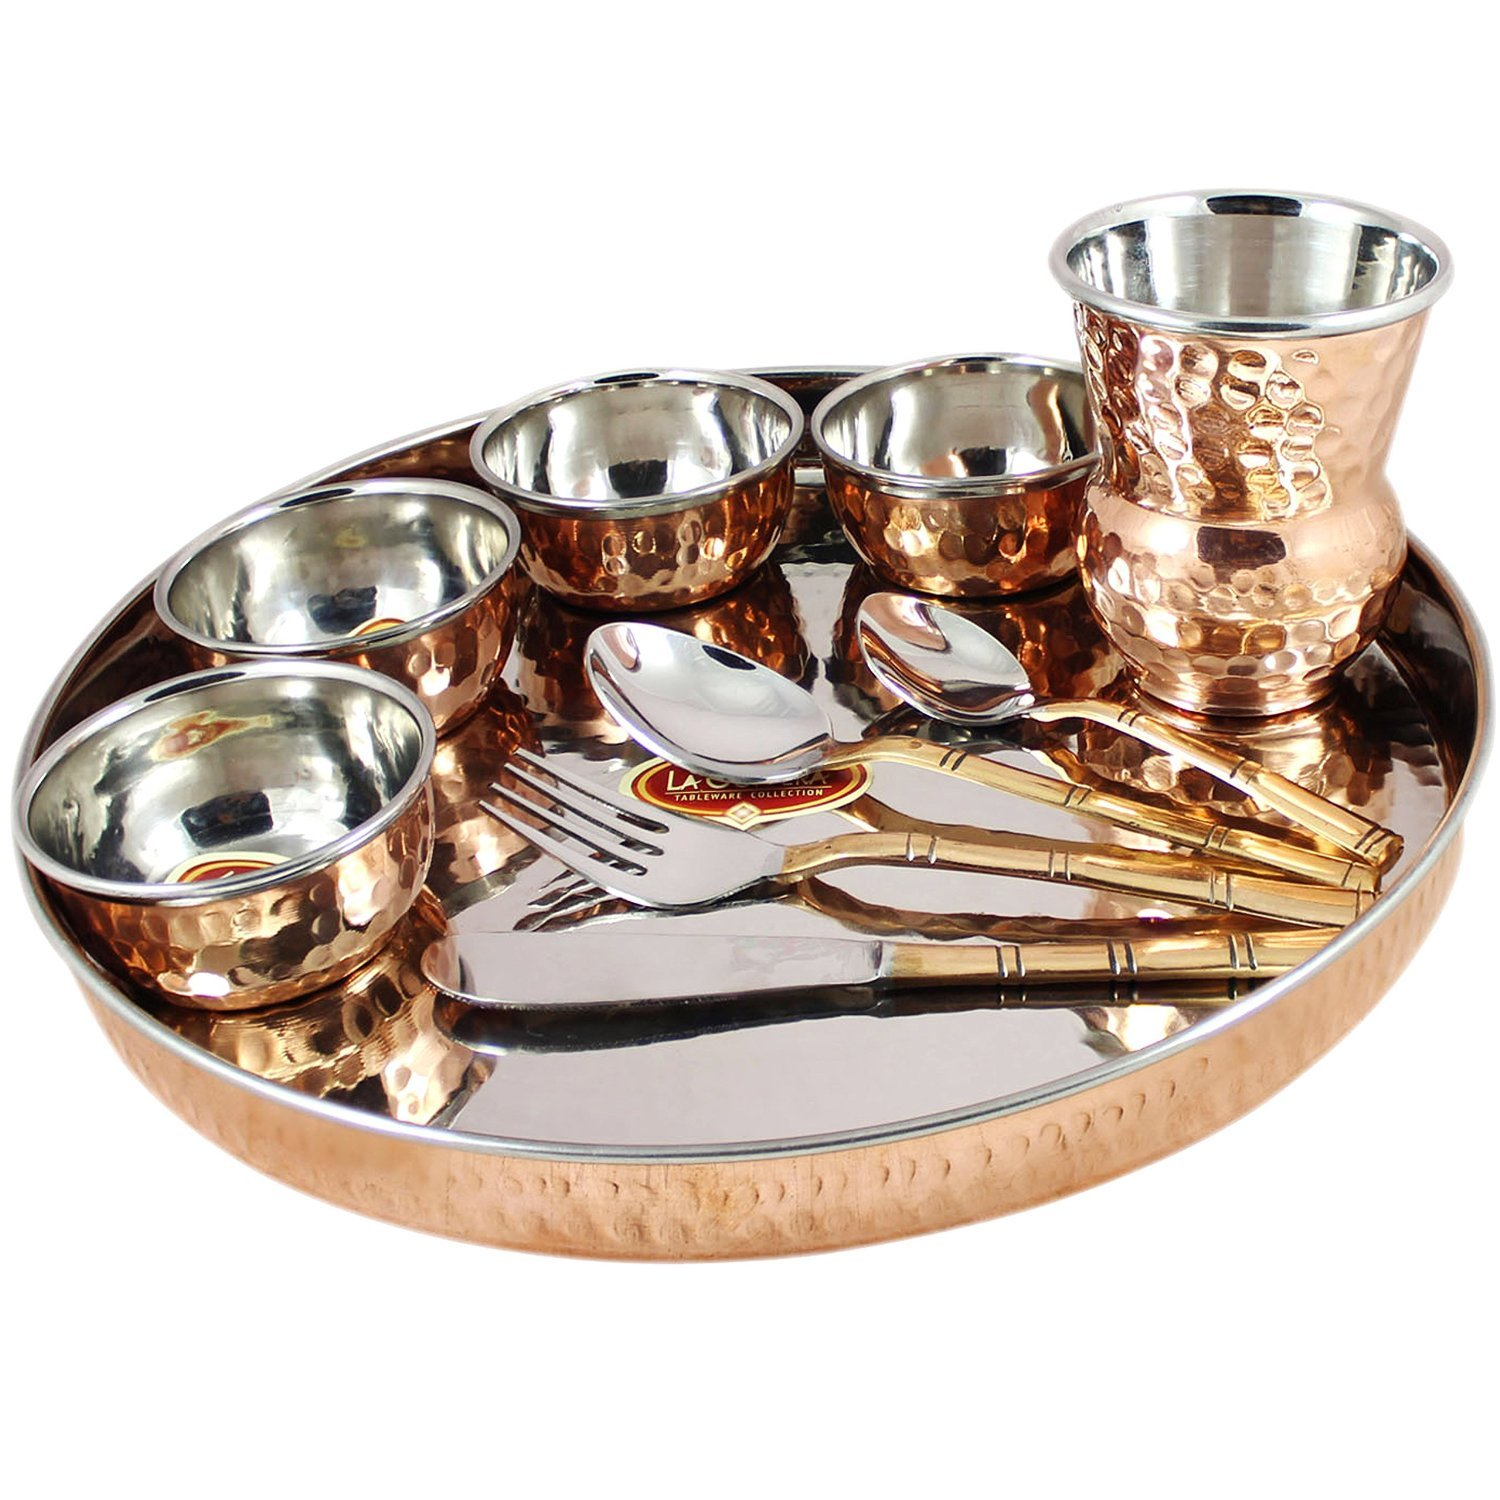 Indian Dinnerware Set Copper Stainless Steel Thali Plate Set, Diameter 12 Inch